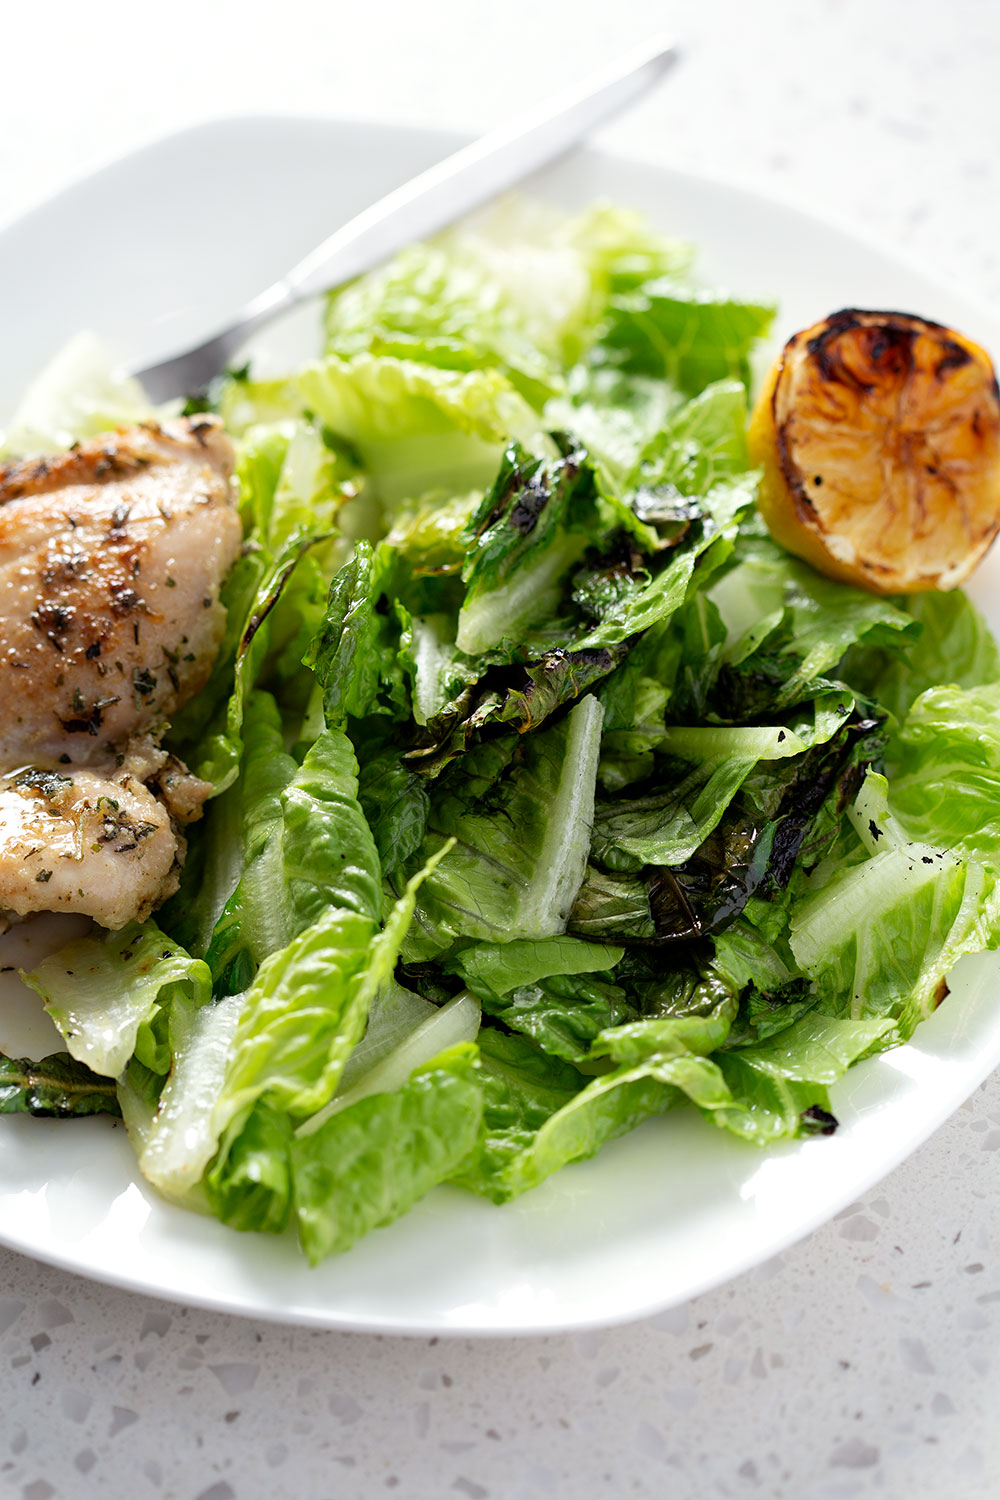 plate of salad with grilled lemon and chicken